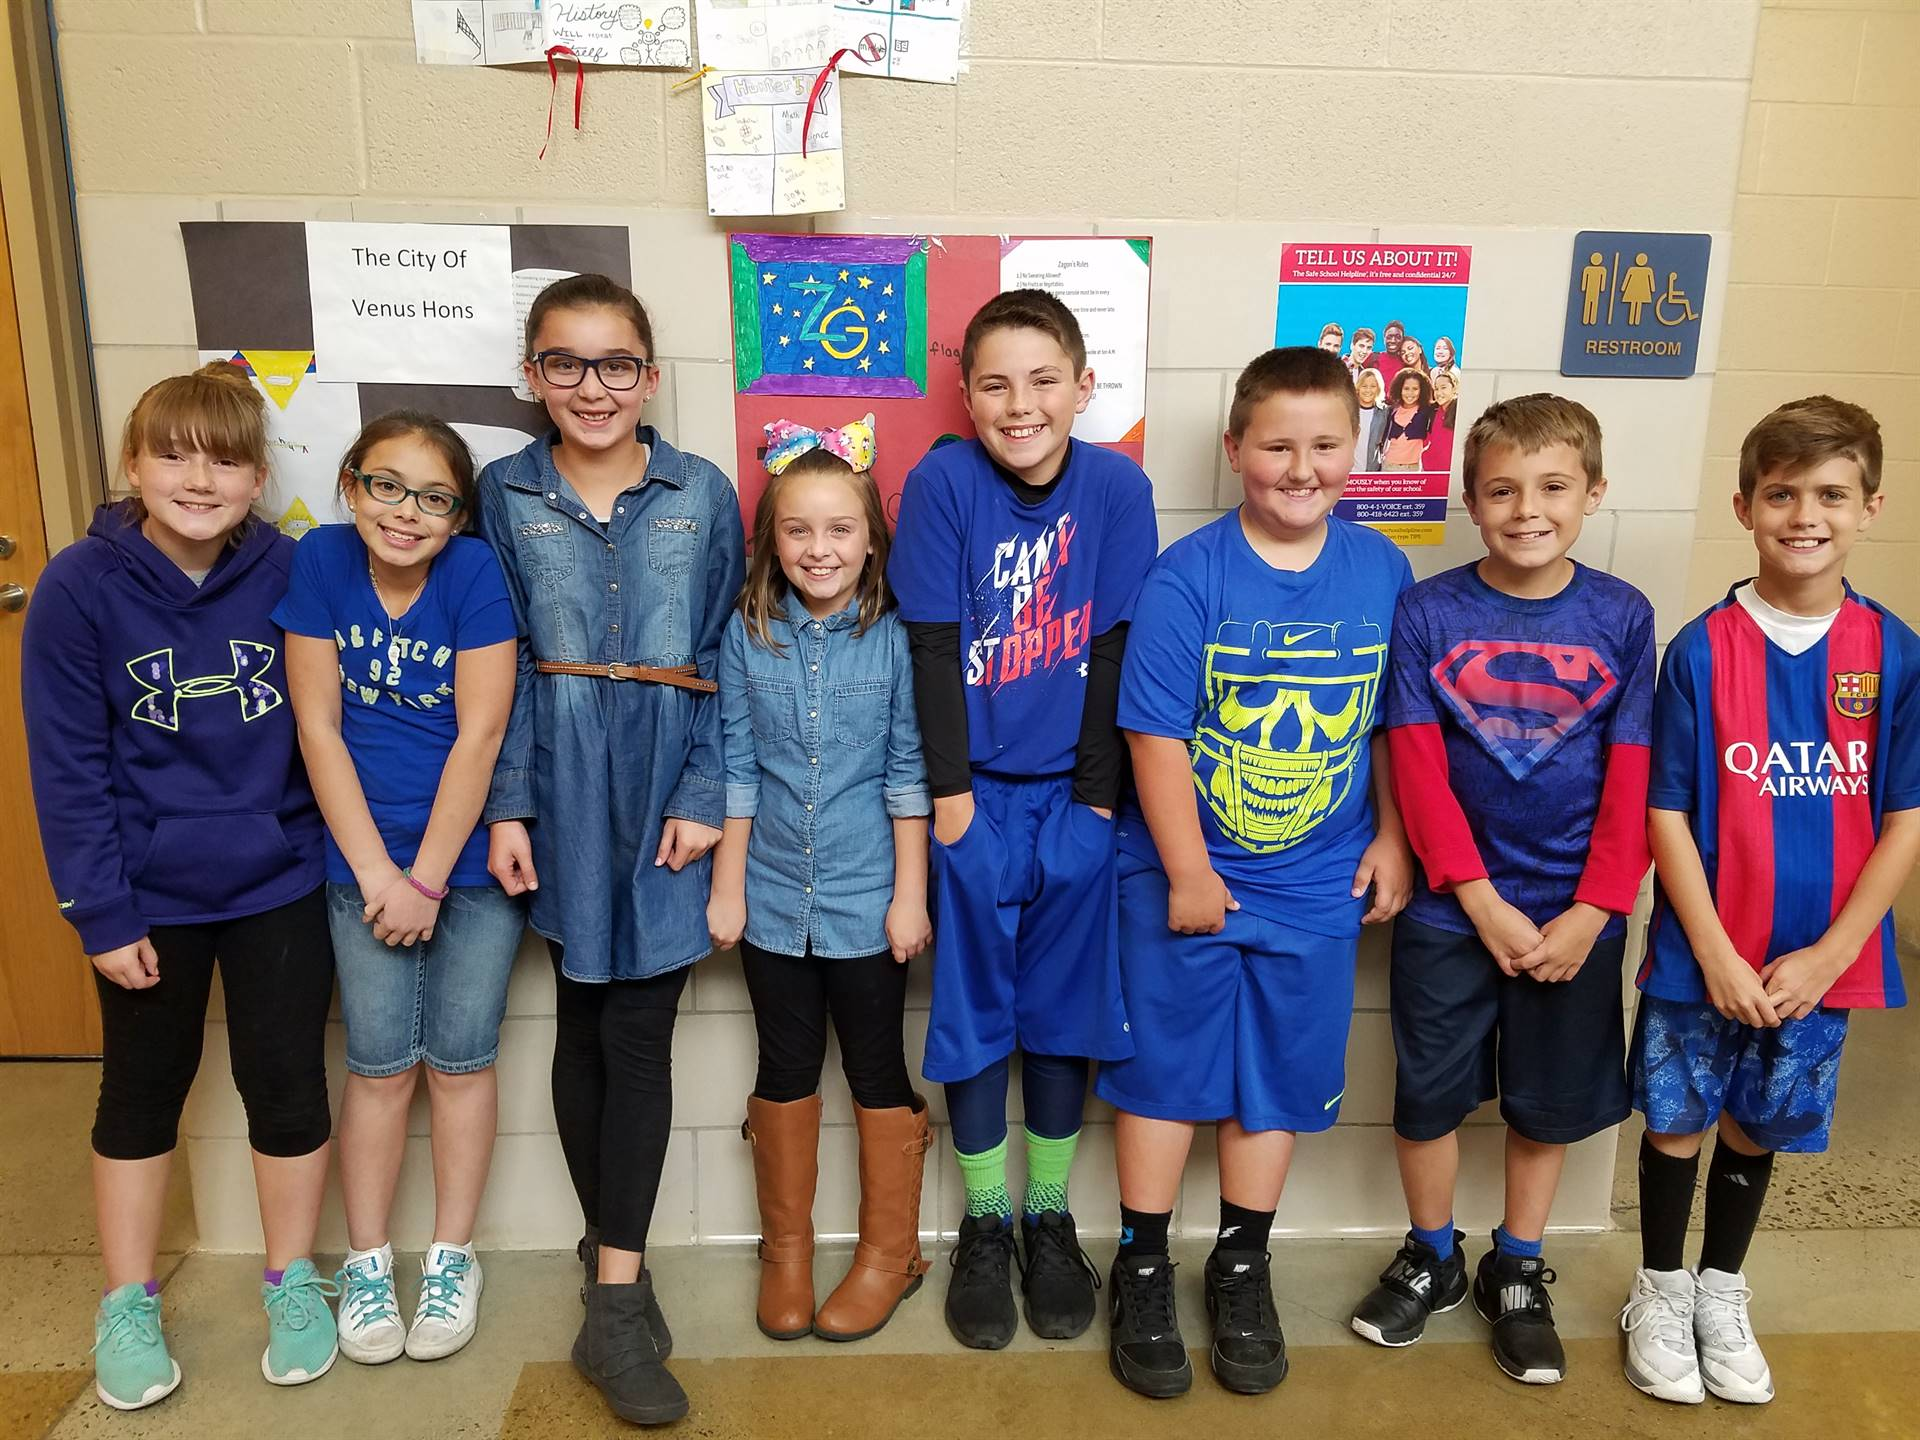 Just a few of the BMS students that recognized National Blue Shirt Day (10/2) to Stomp Out Bullying.